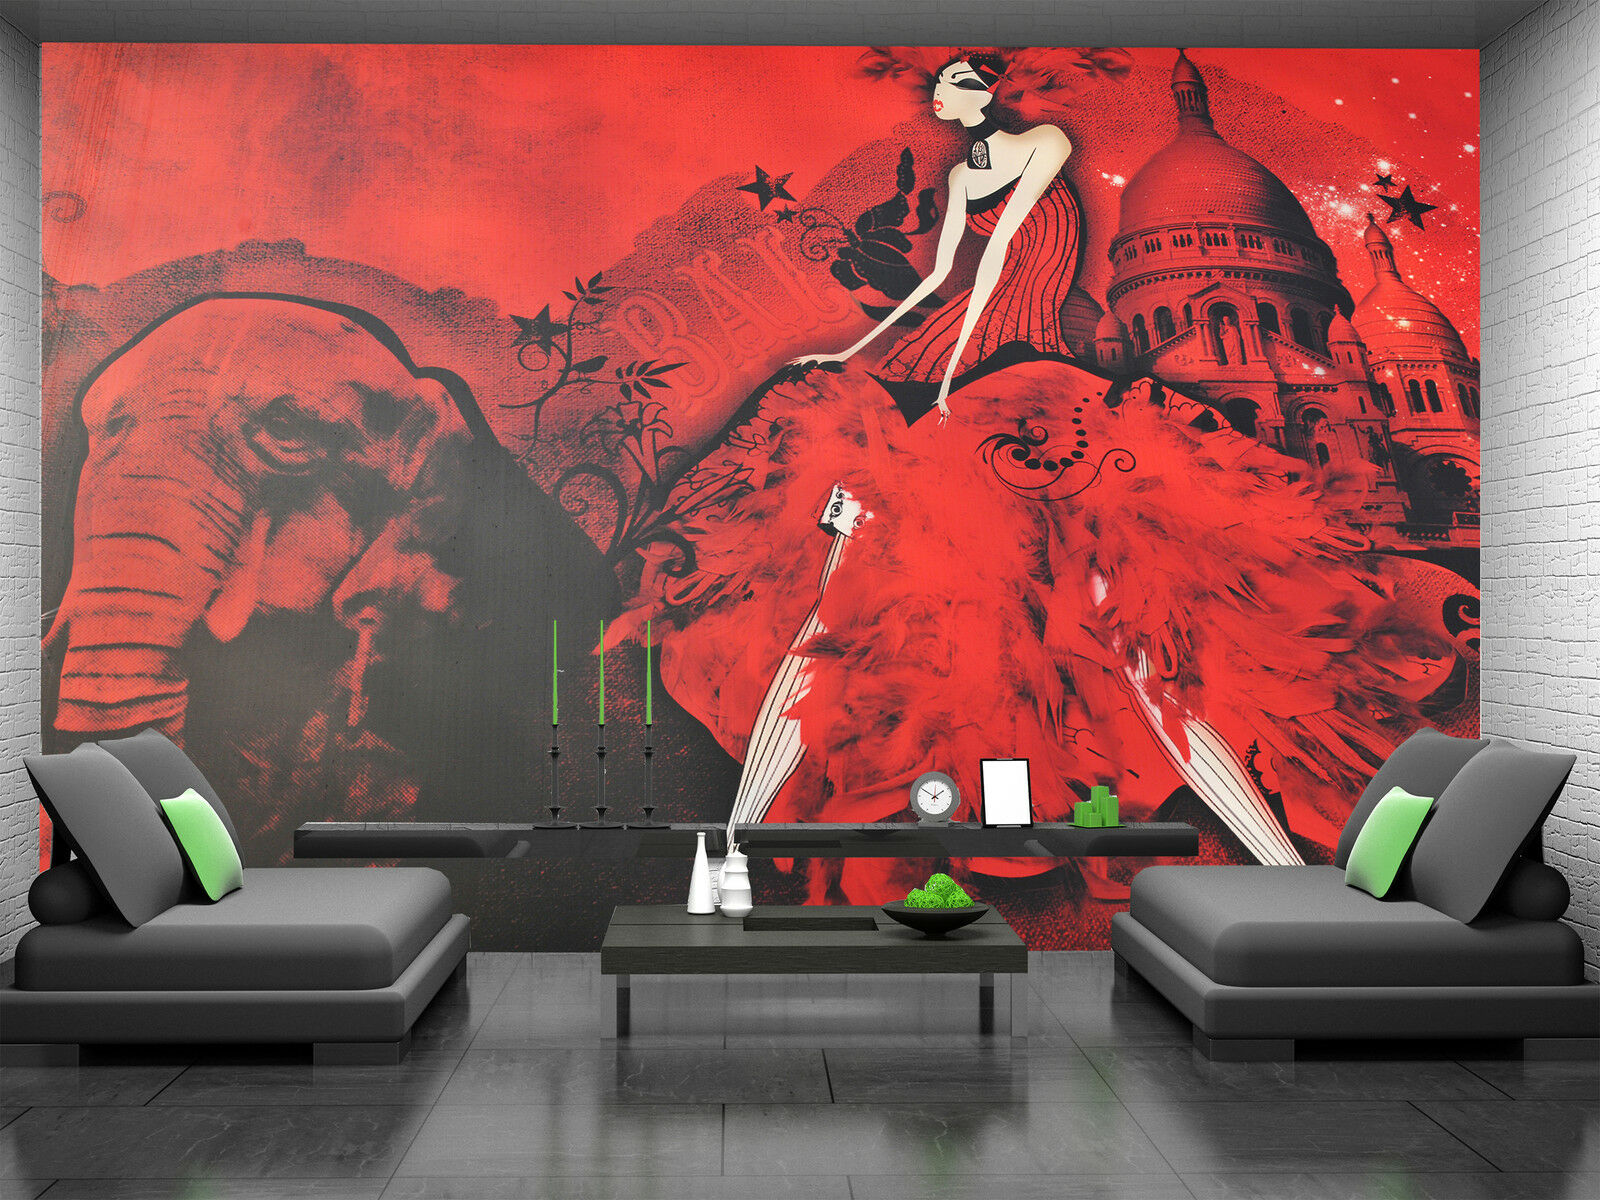 Moulin red Wall Mural Photo Wallpaper GIANT DECOR Paper Poster Free Paste